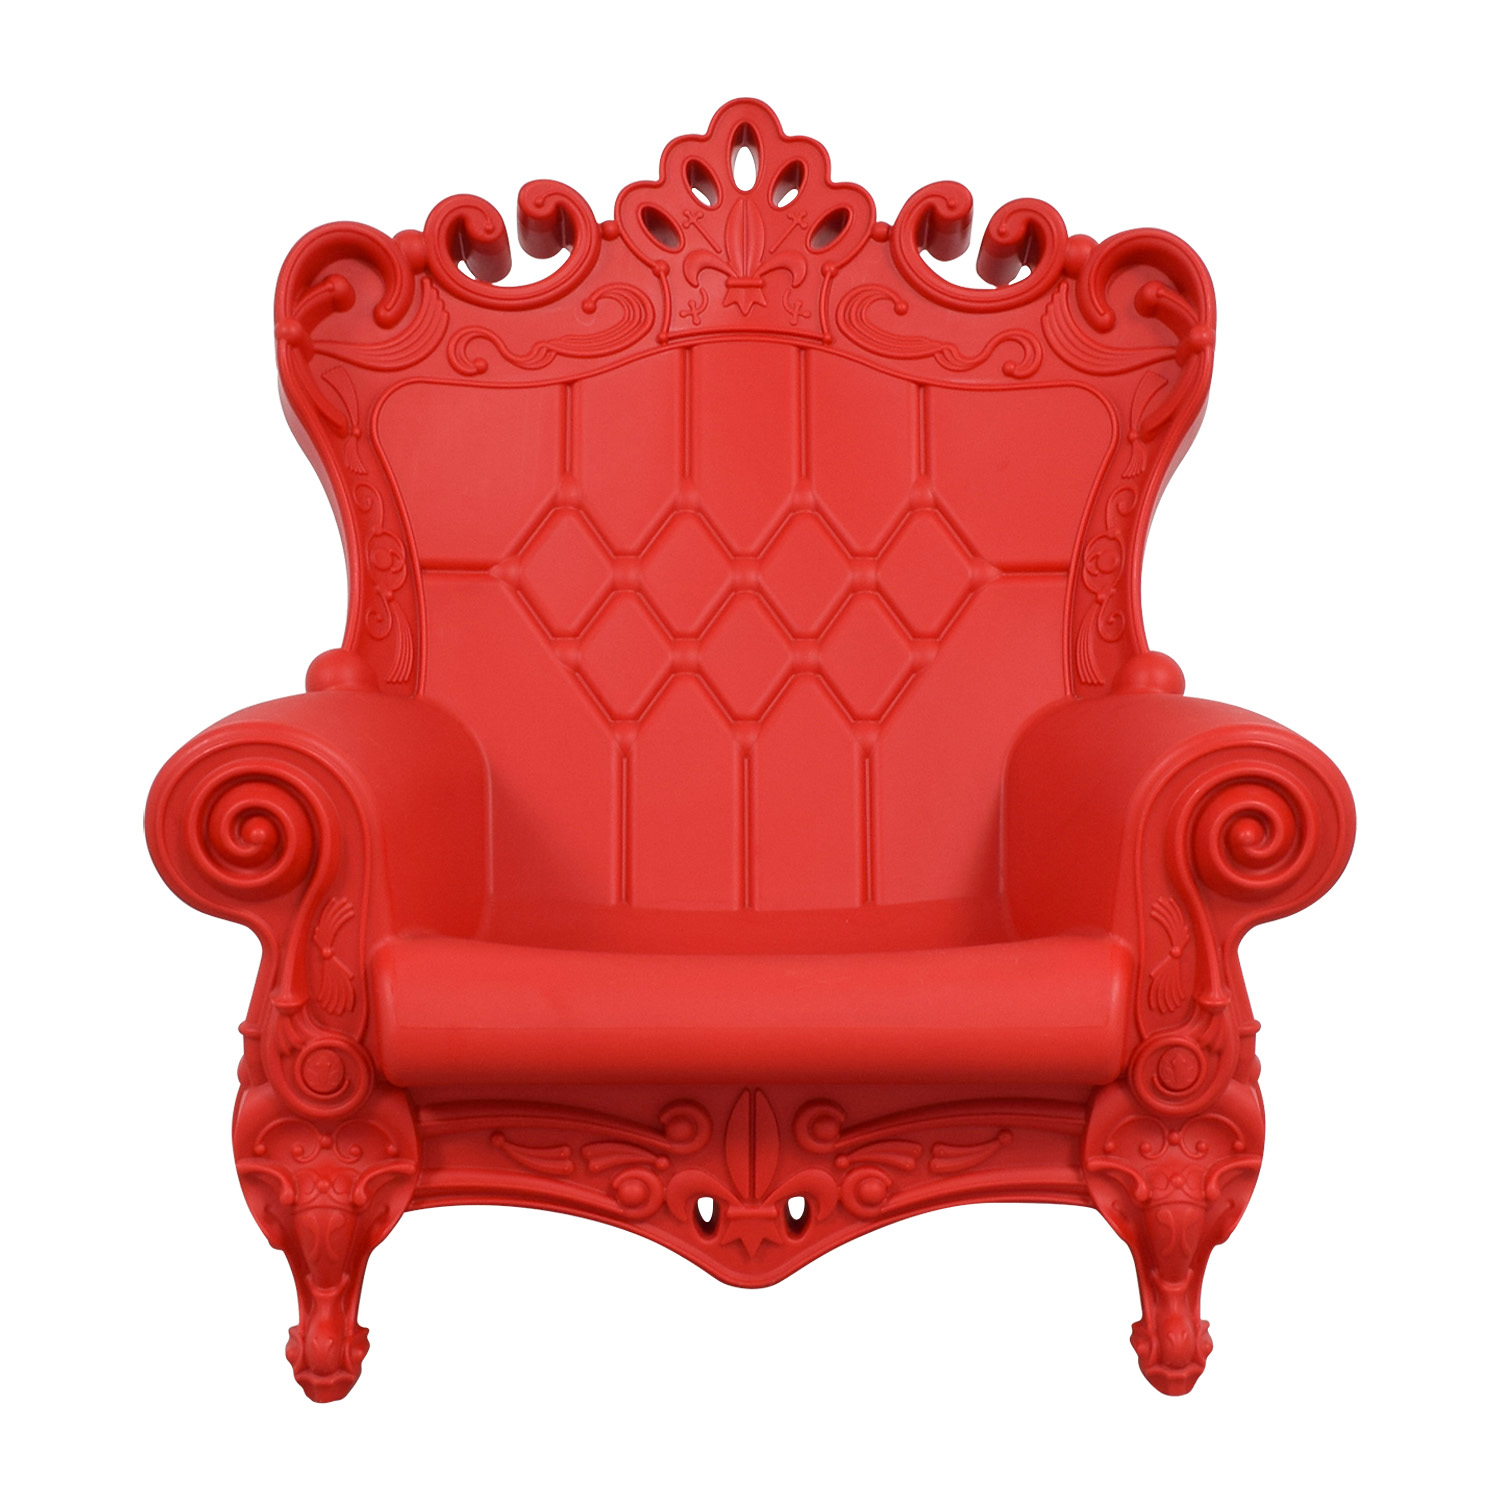 Linvin Linvin Queen of Love Chair Red Passion